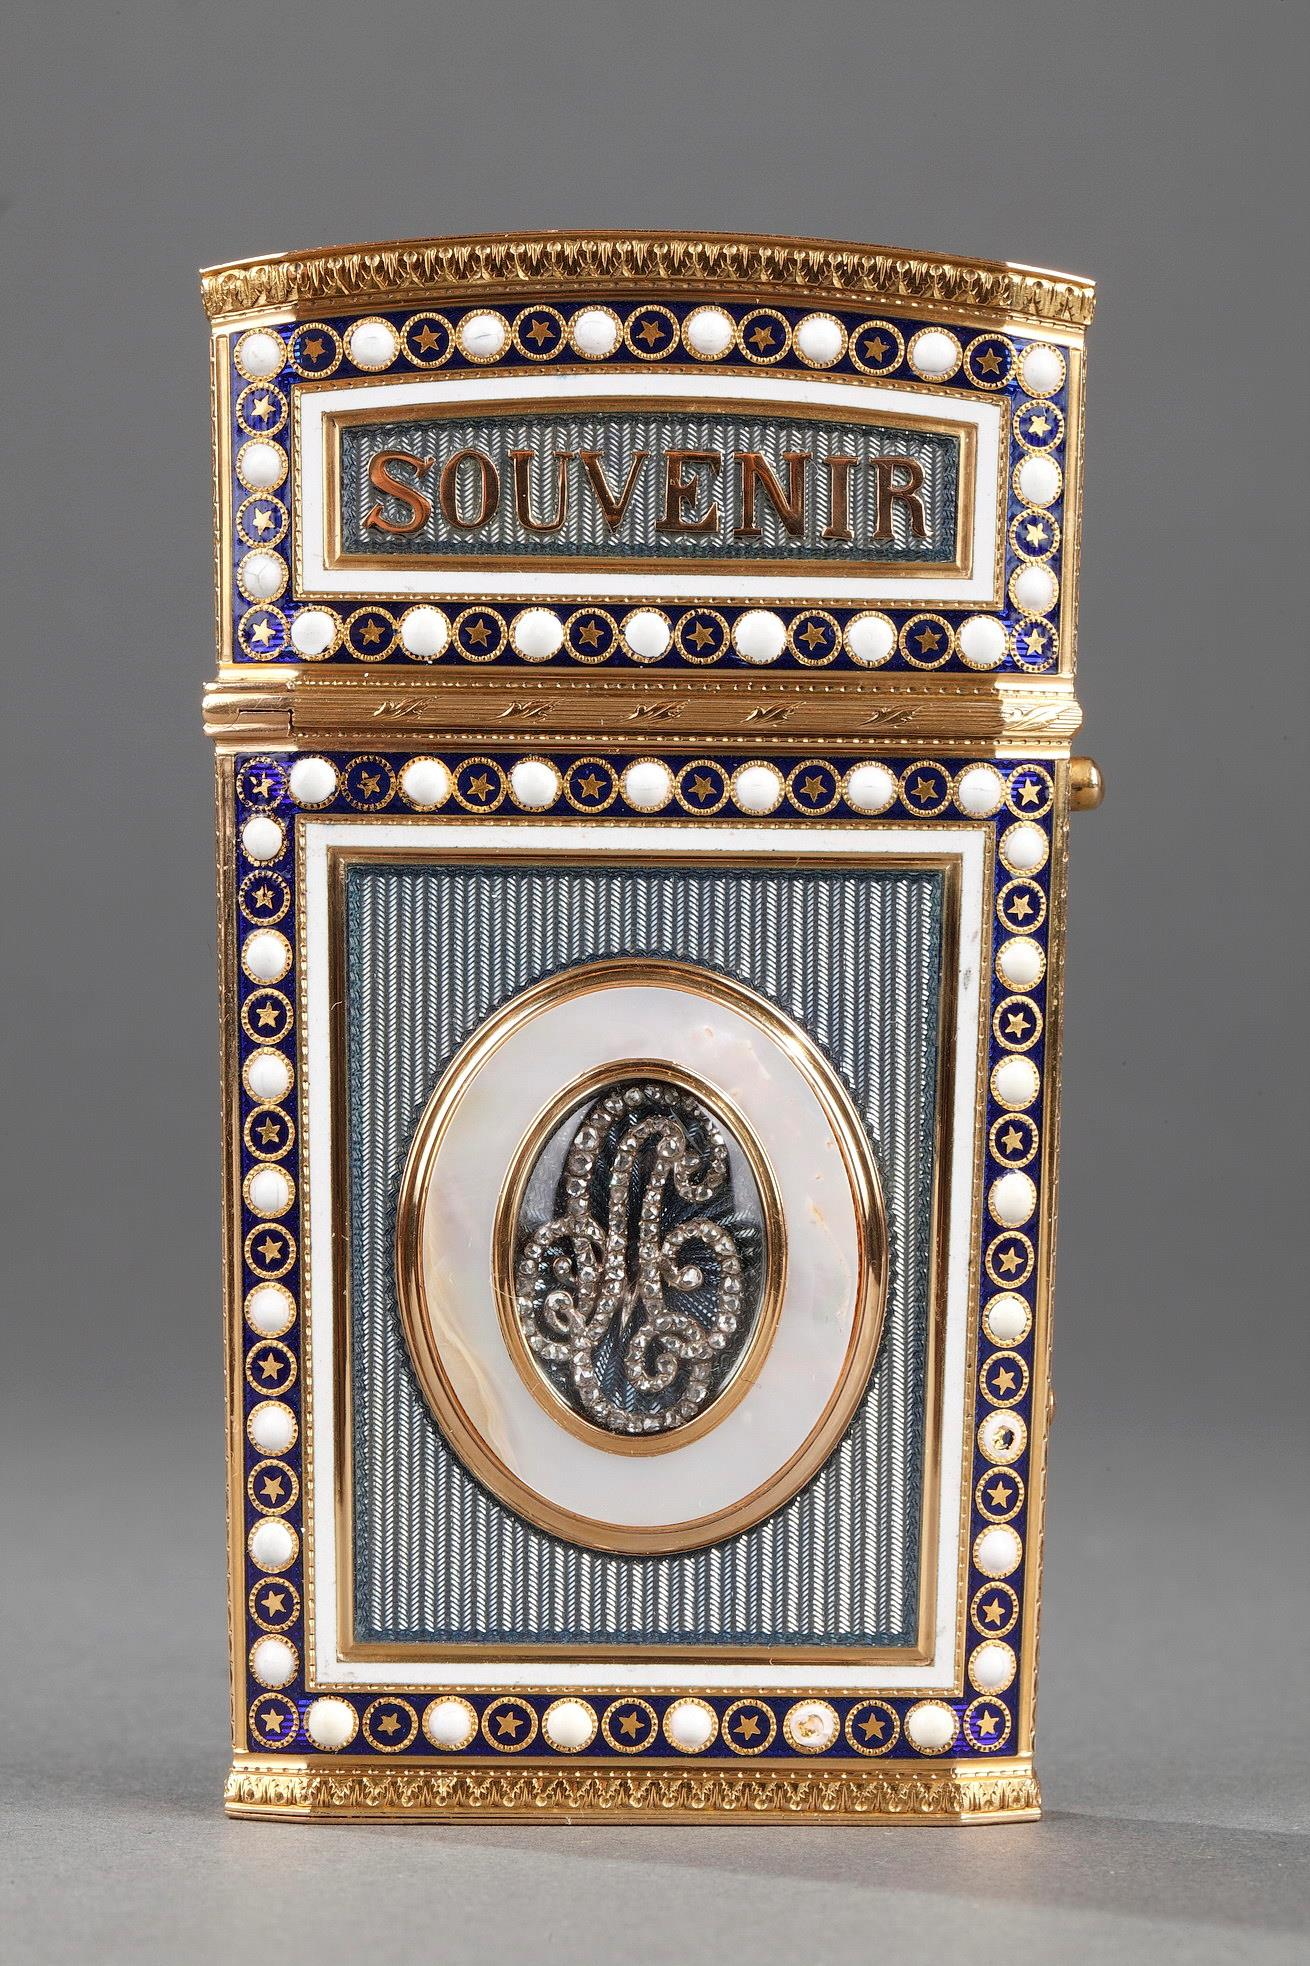 TABLET CASE IN GOLD WITH ENAMEL, MOTHER-OF-PEARL AND IVORY.<br/> LATE 18TH CENTURY WORK.